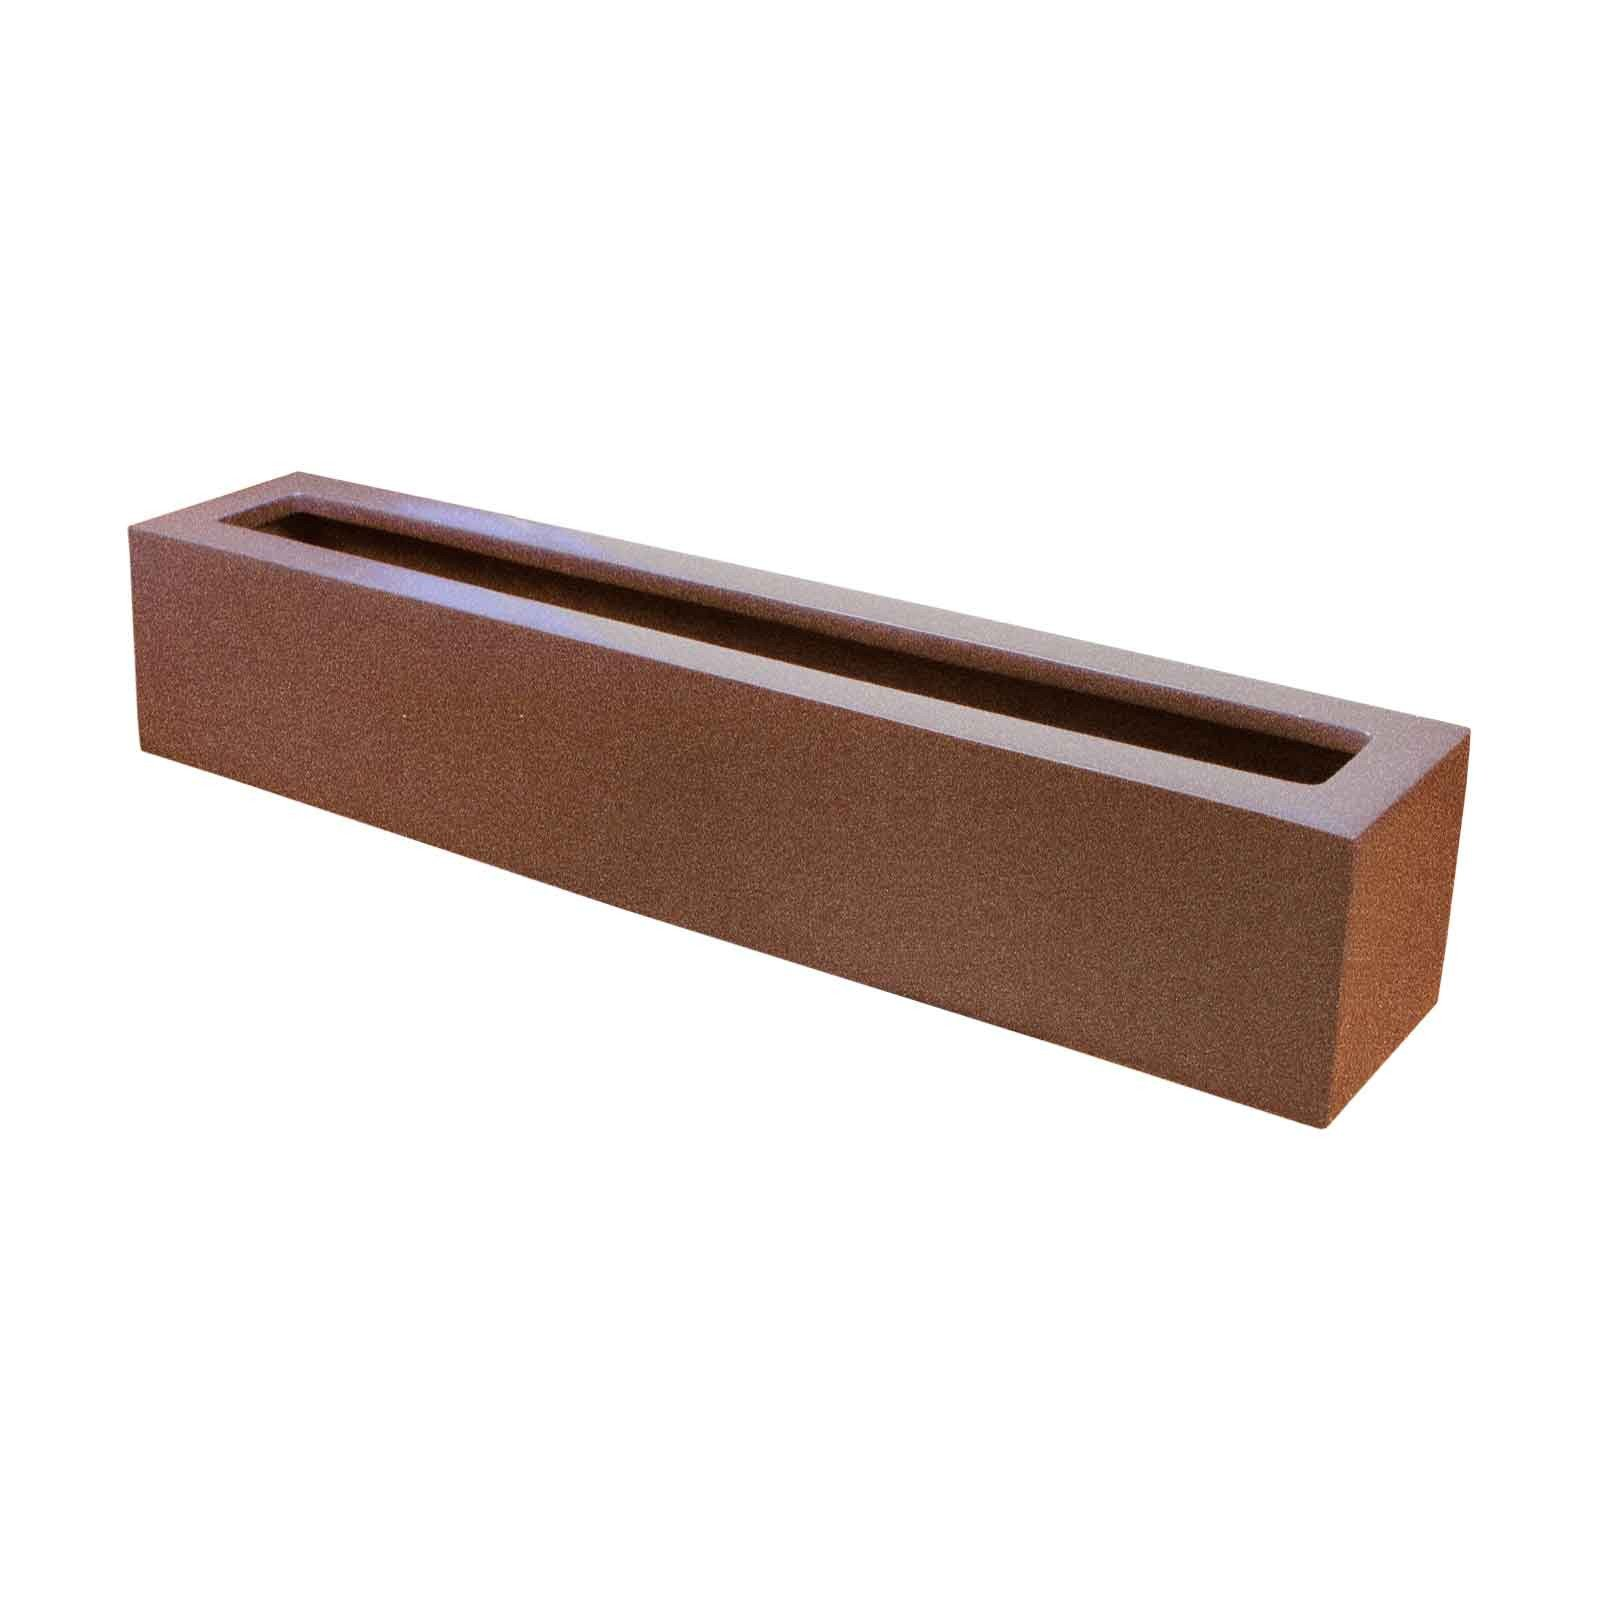 Narrow Outdoor Planter Box - Fiberglass - 42'L x 8'W x 8'H